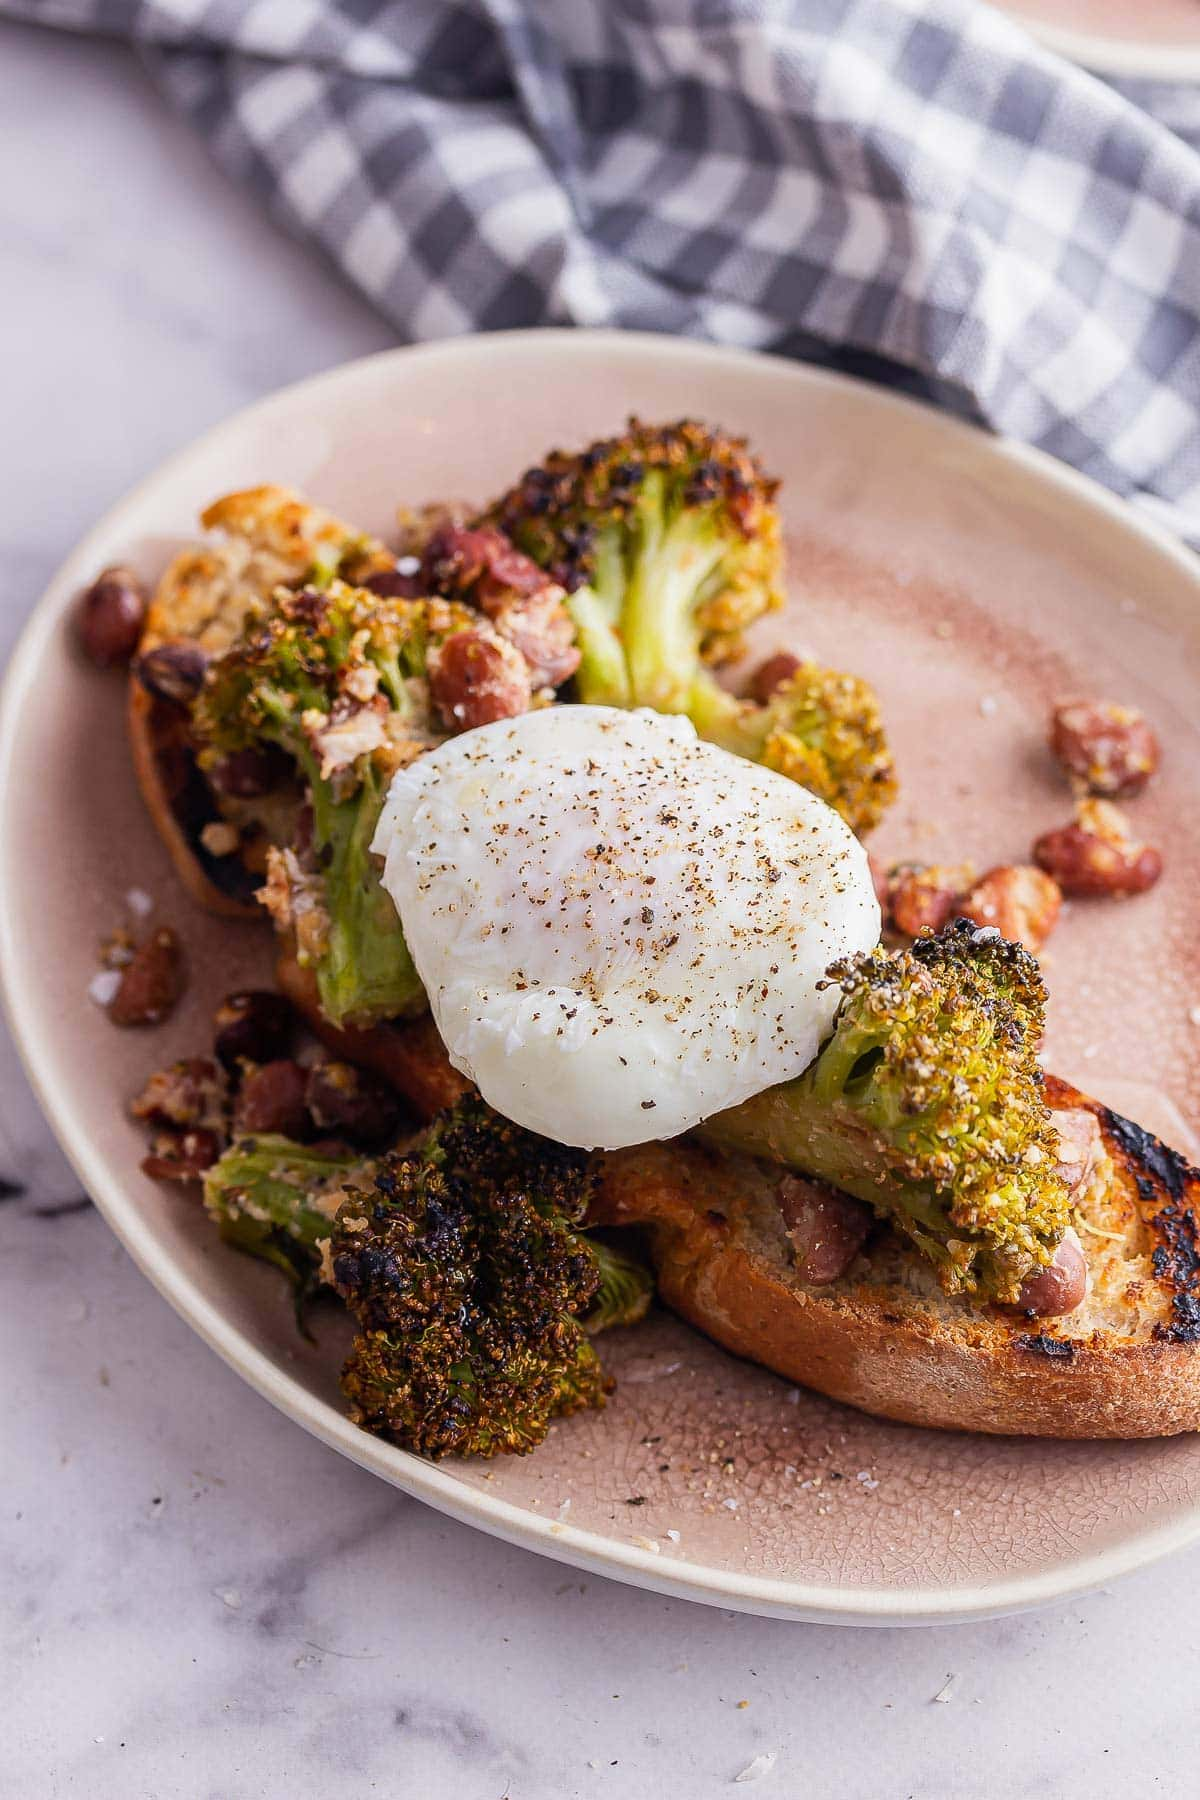 Pink plate of toast with broccoli and a poached egg